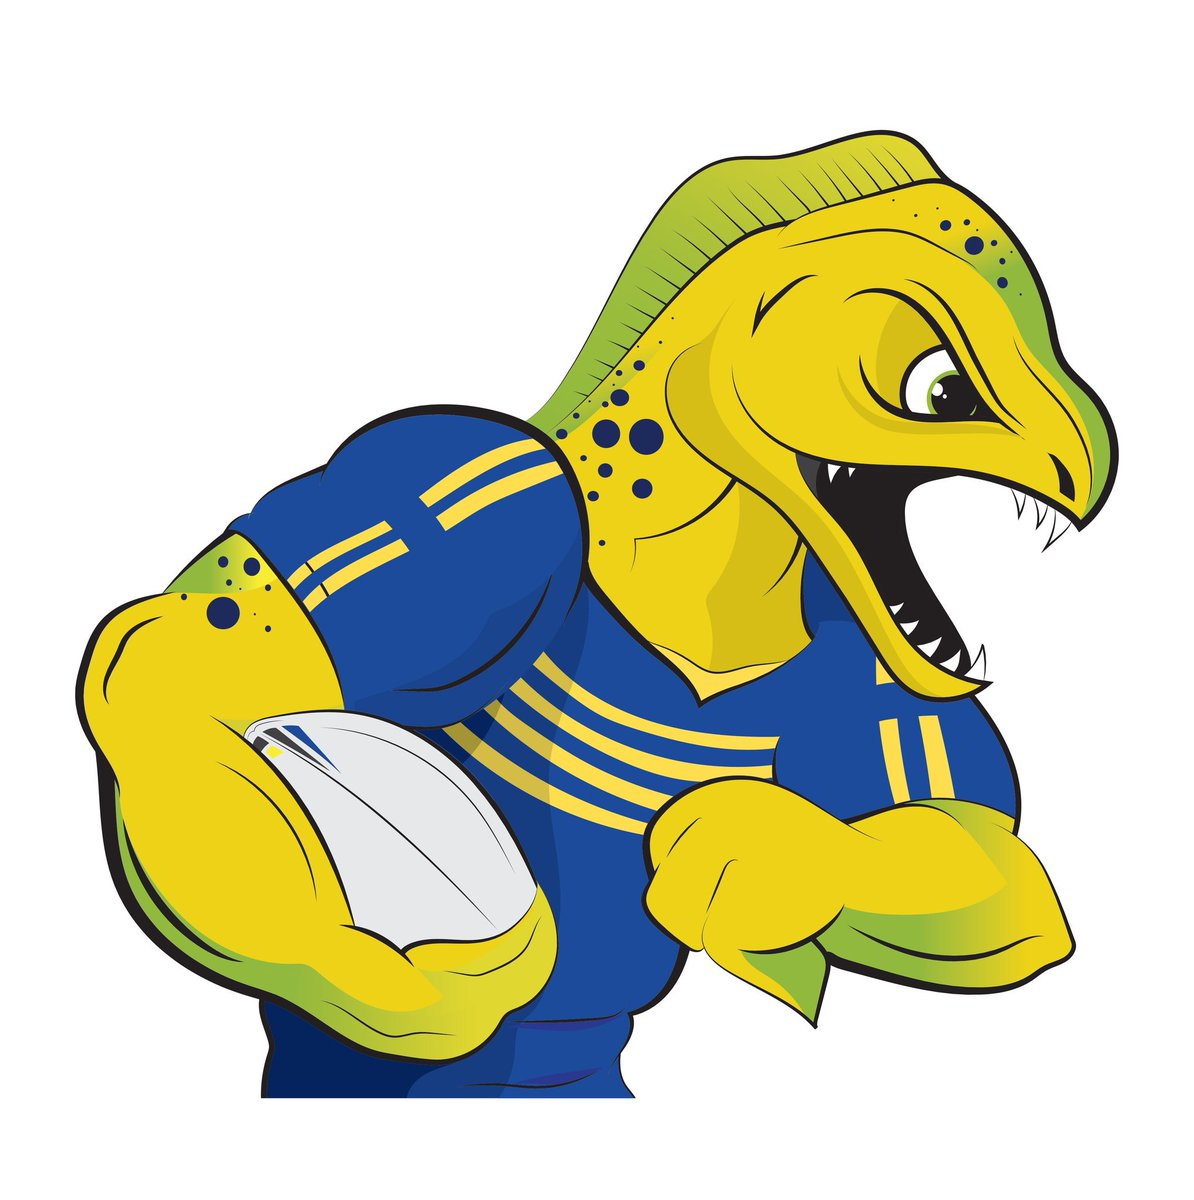 Luke Philp On Twitter Of Course Eelsforever Refers To The Australian Rugby Team The Parramatta Eels